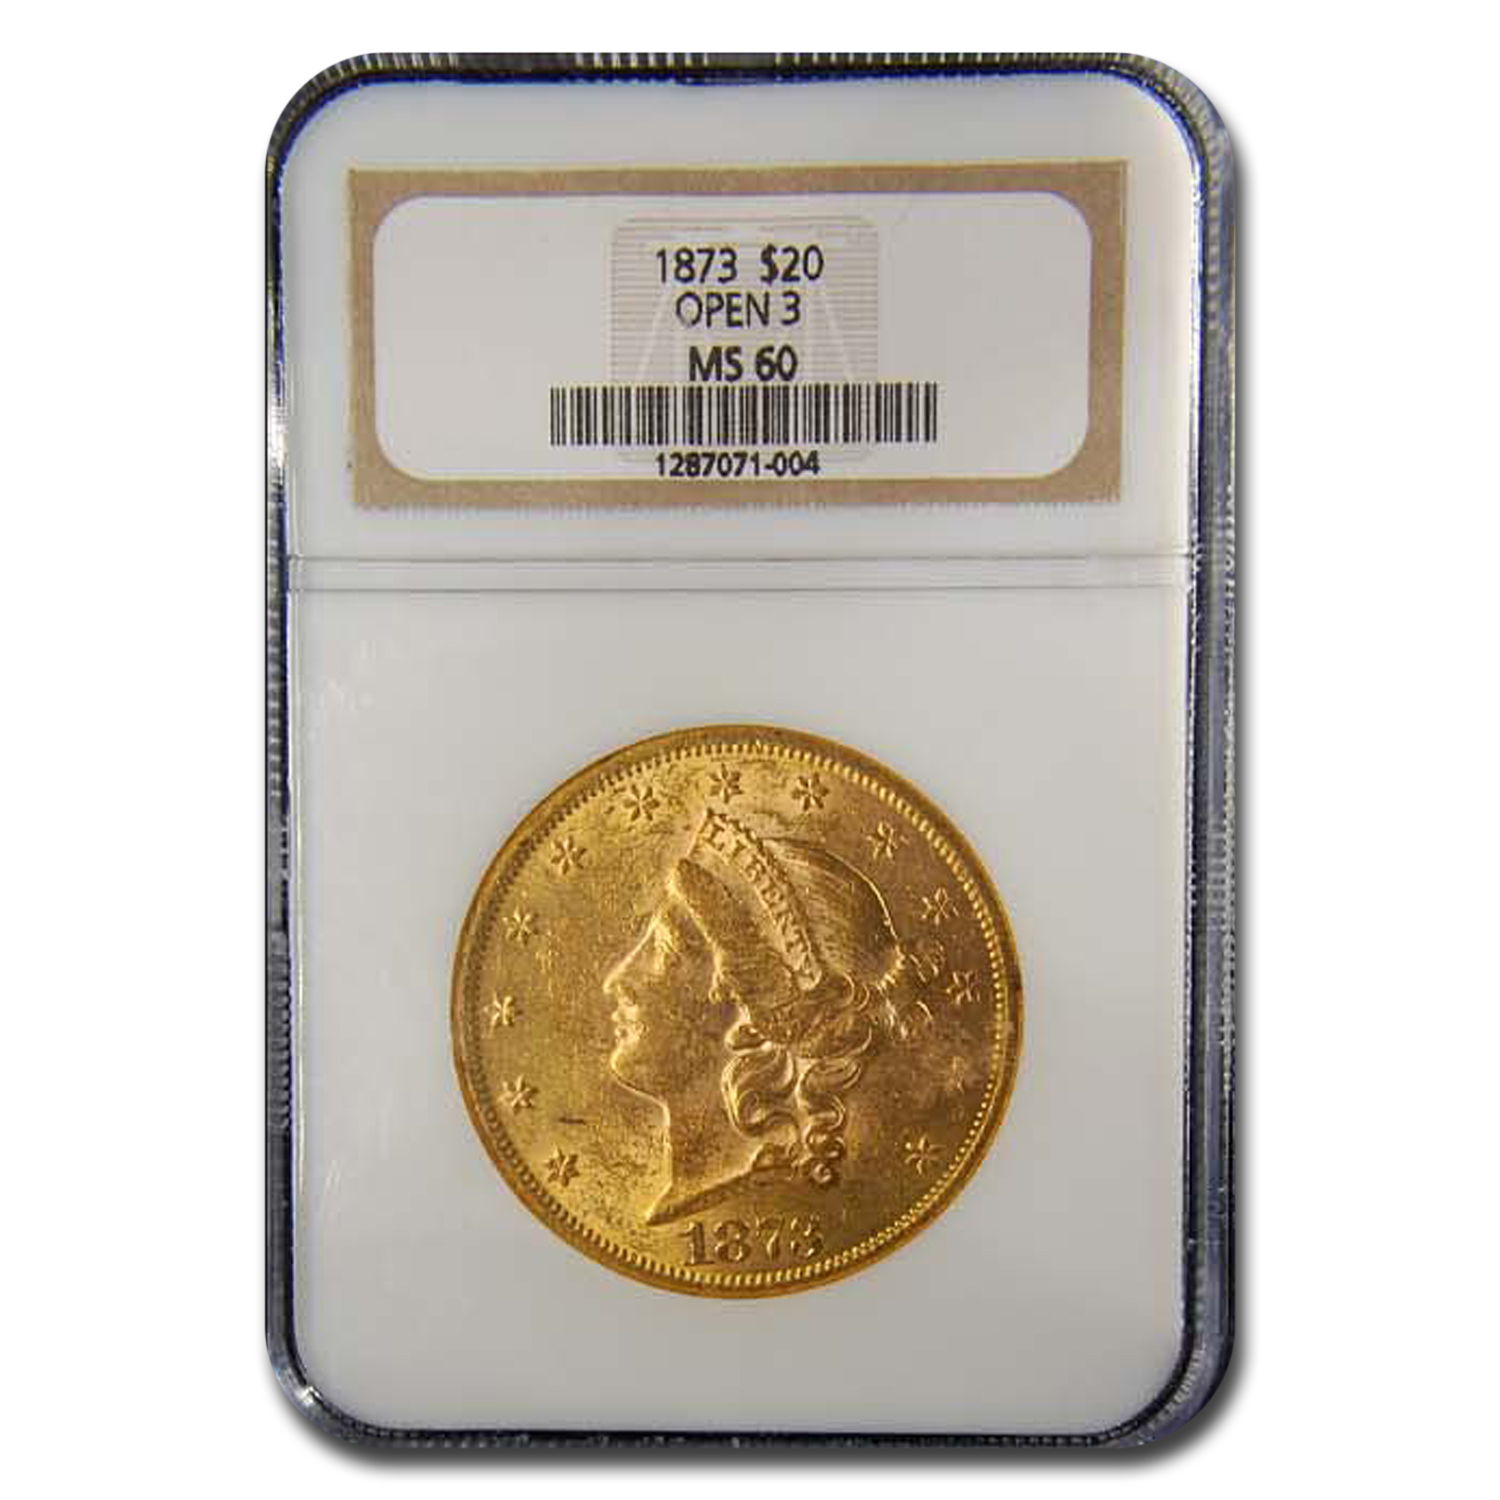 1873 $20 Liberty Gold Double Eagle Open 3 MS-60 NGC